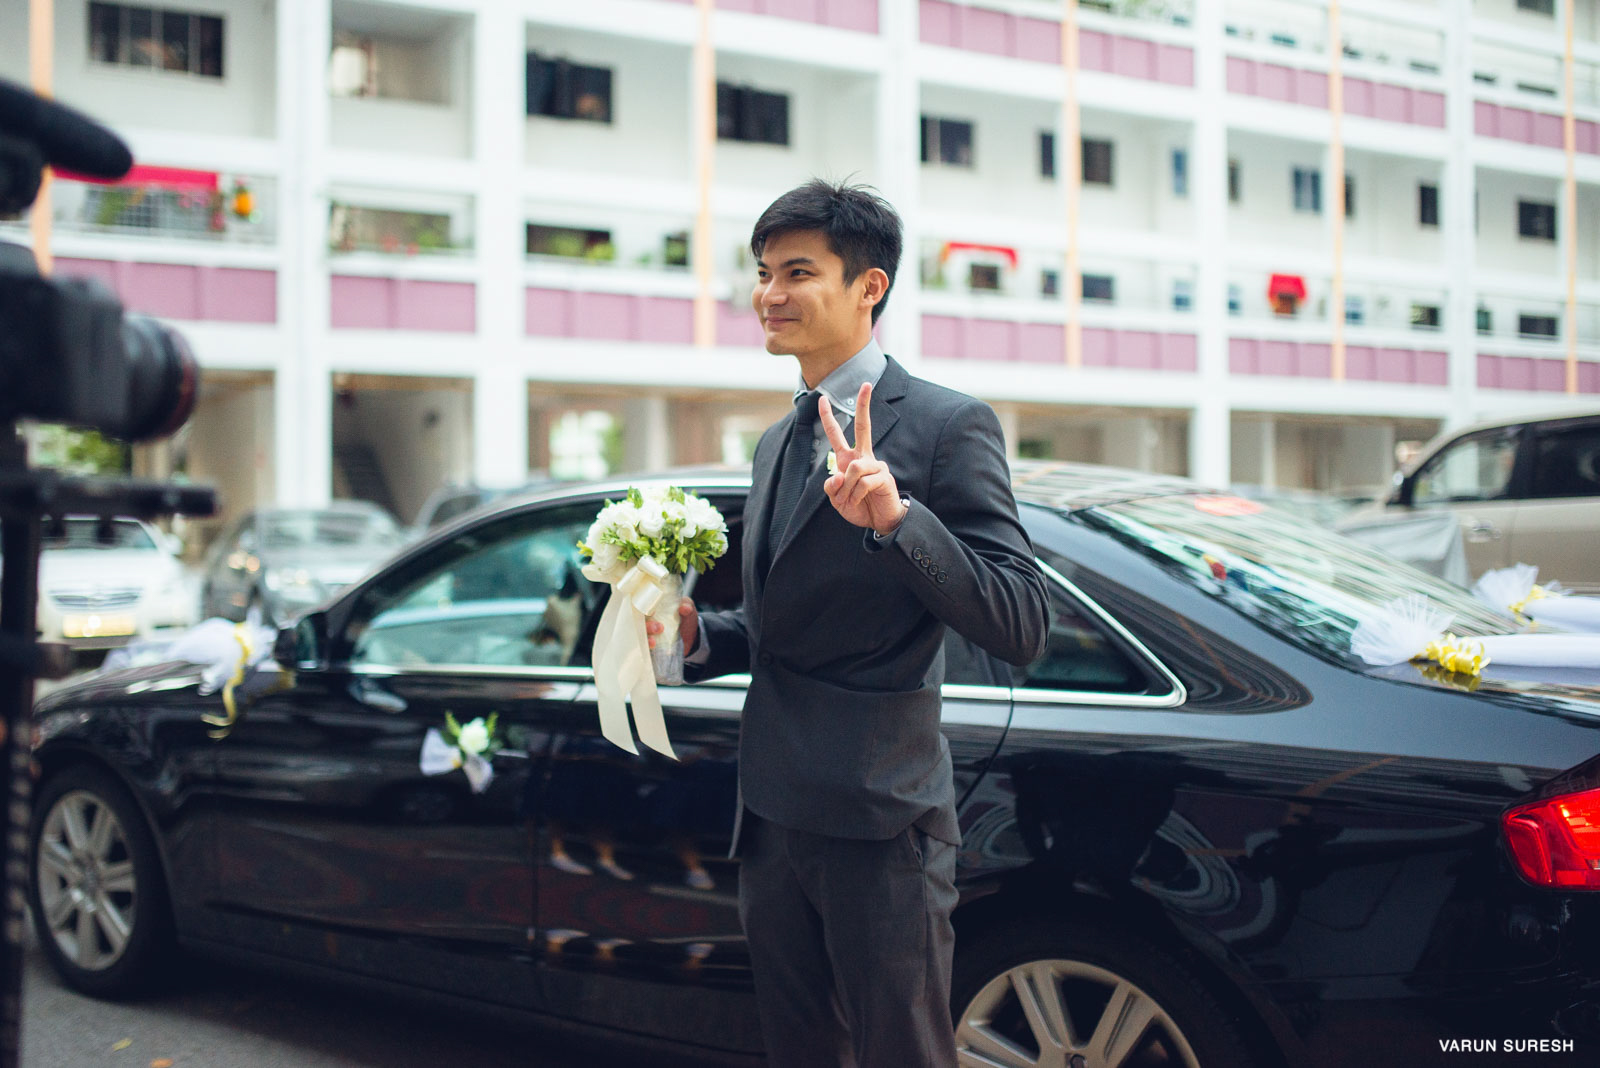 Singapore is known for its discipline. Except when a wedding happens in the neighbourhood. The groom arrives with his men wrecking havoc! Honking the life out of the entire block!